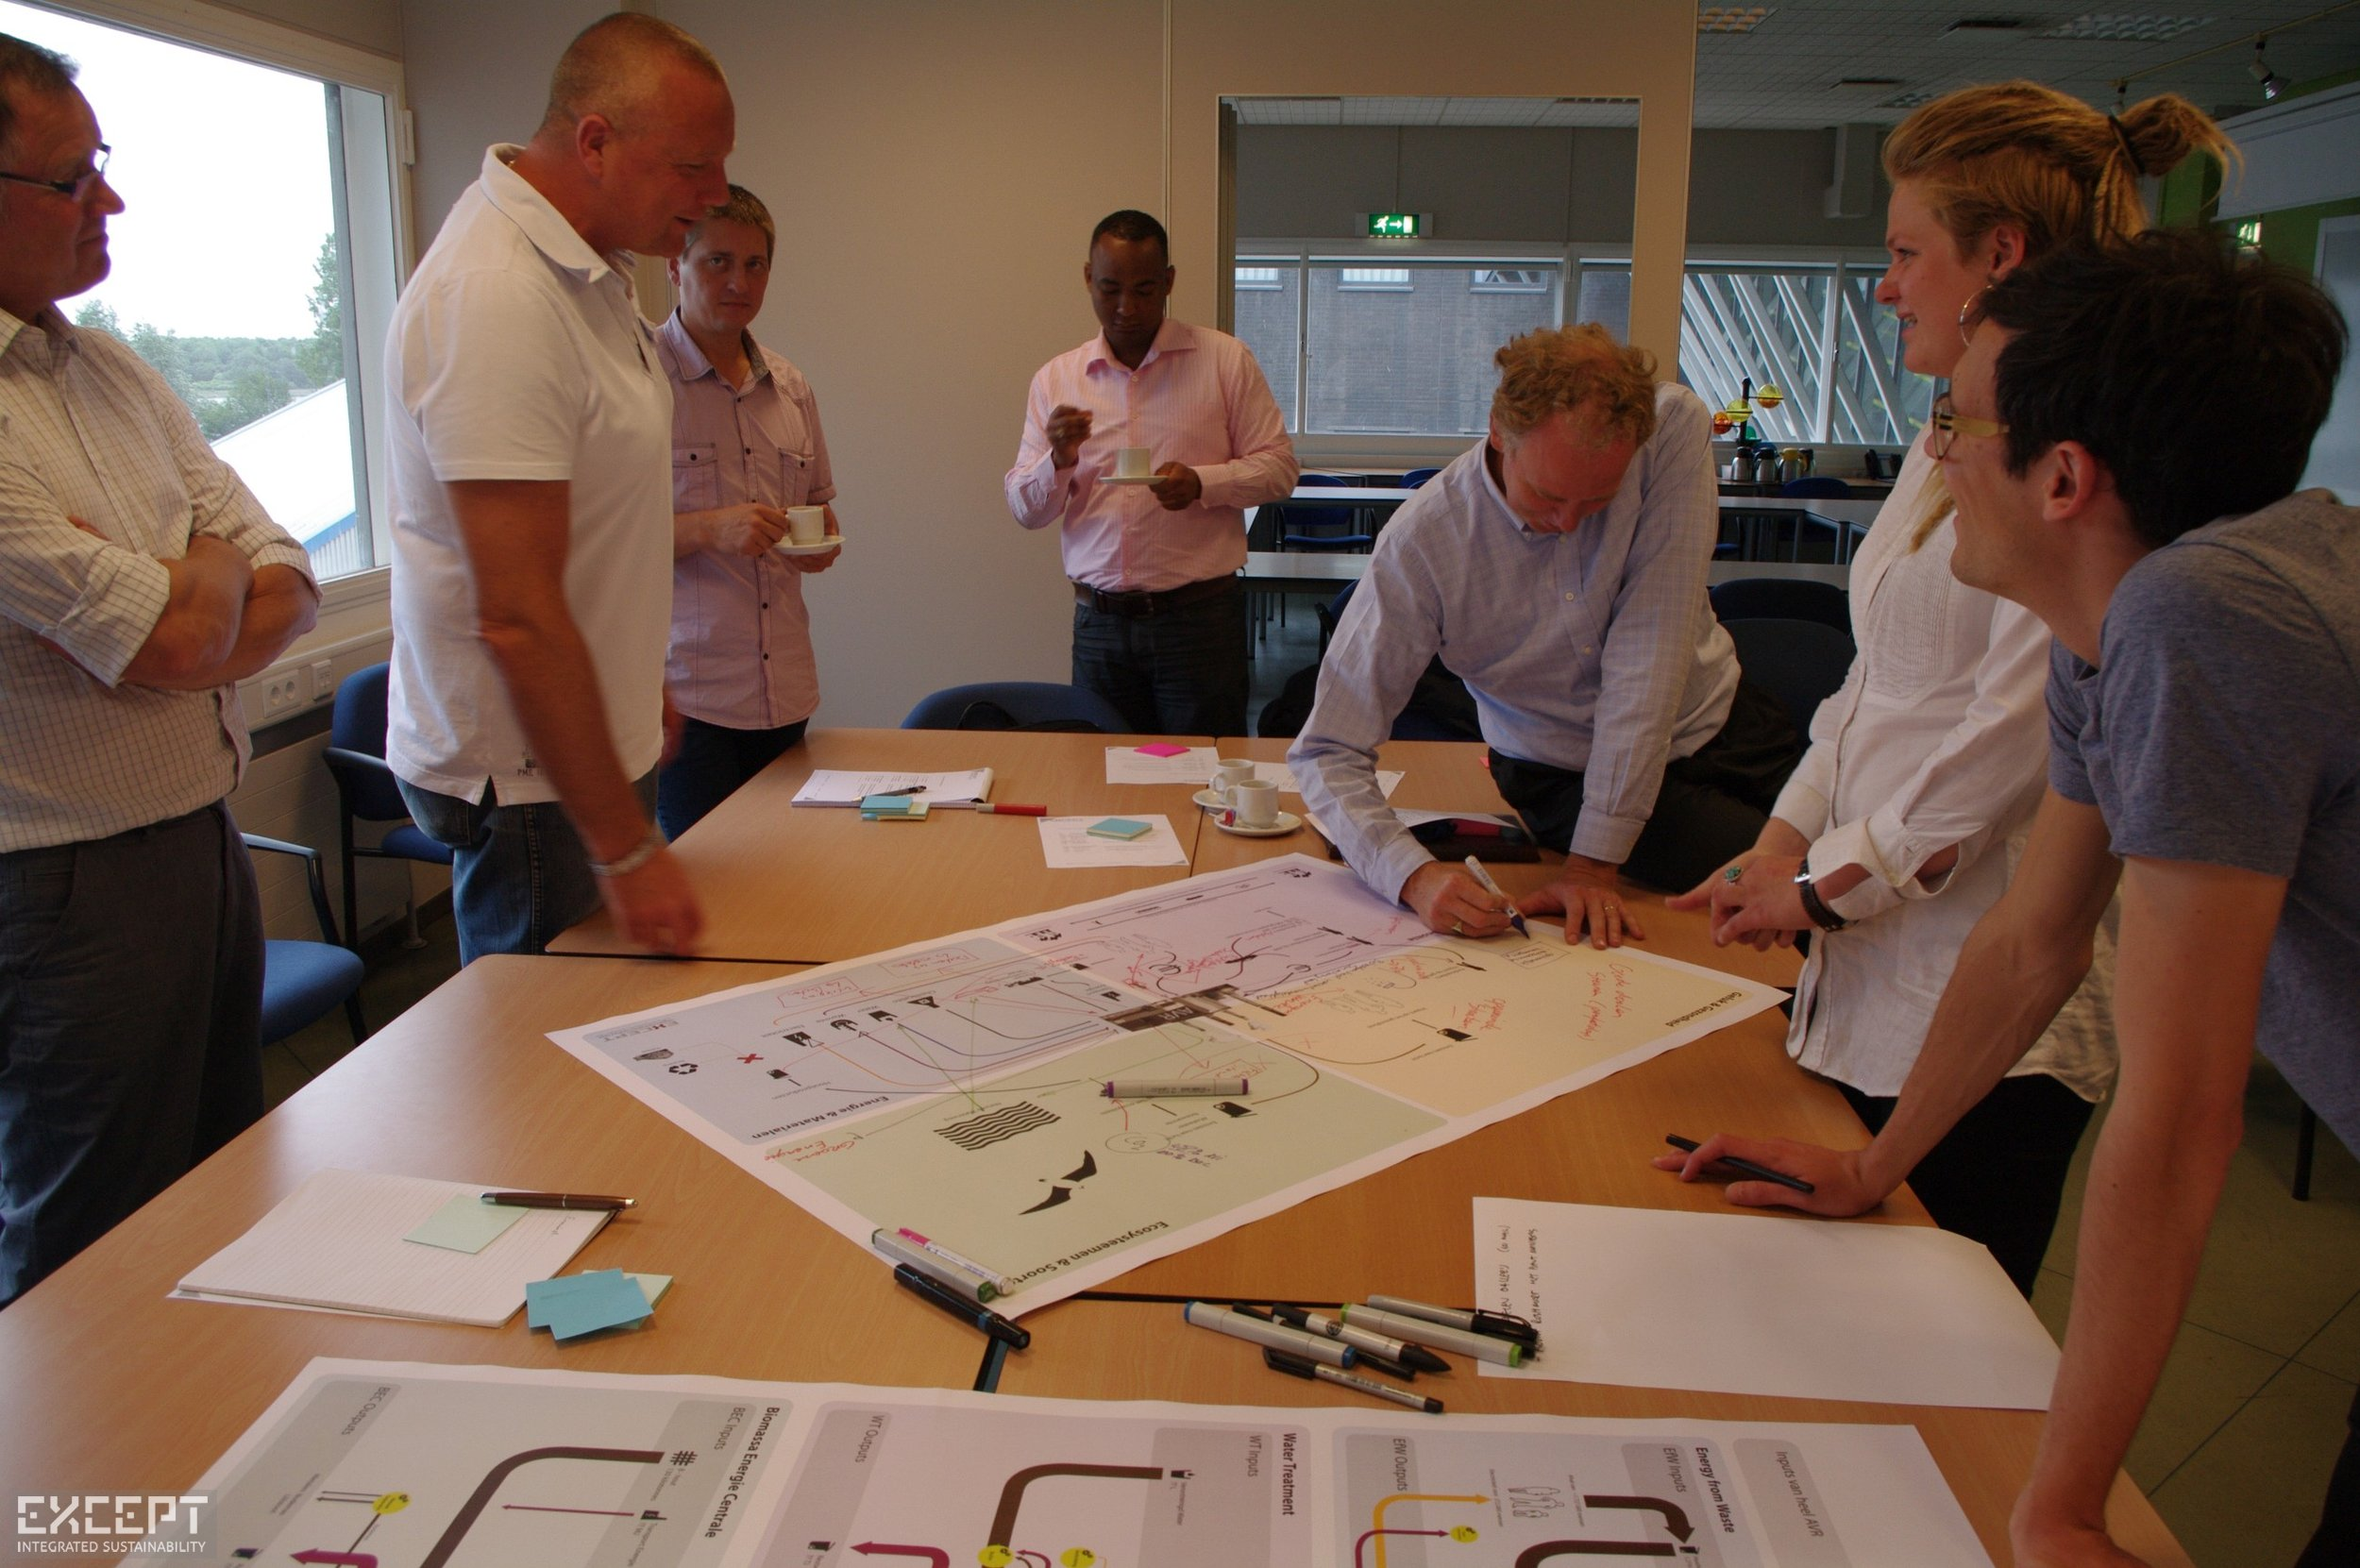 System mapping workshop - Jointly mapping a system at the AVR workshop